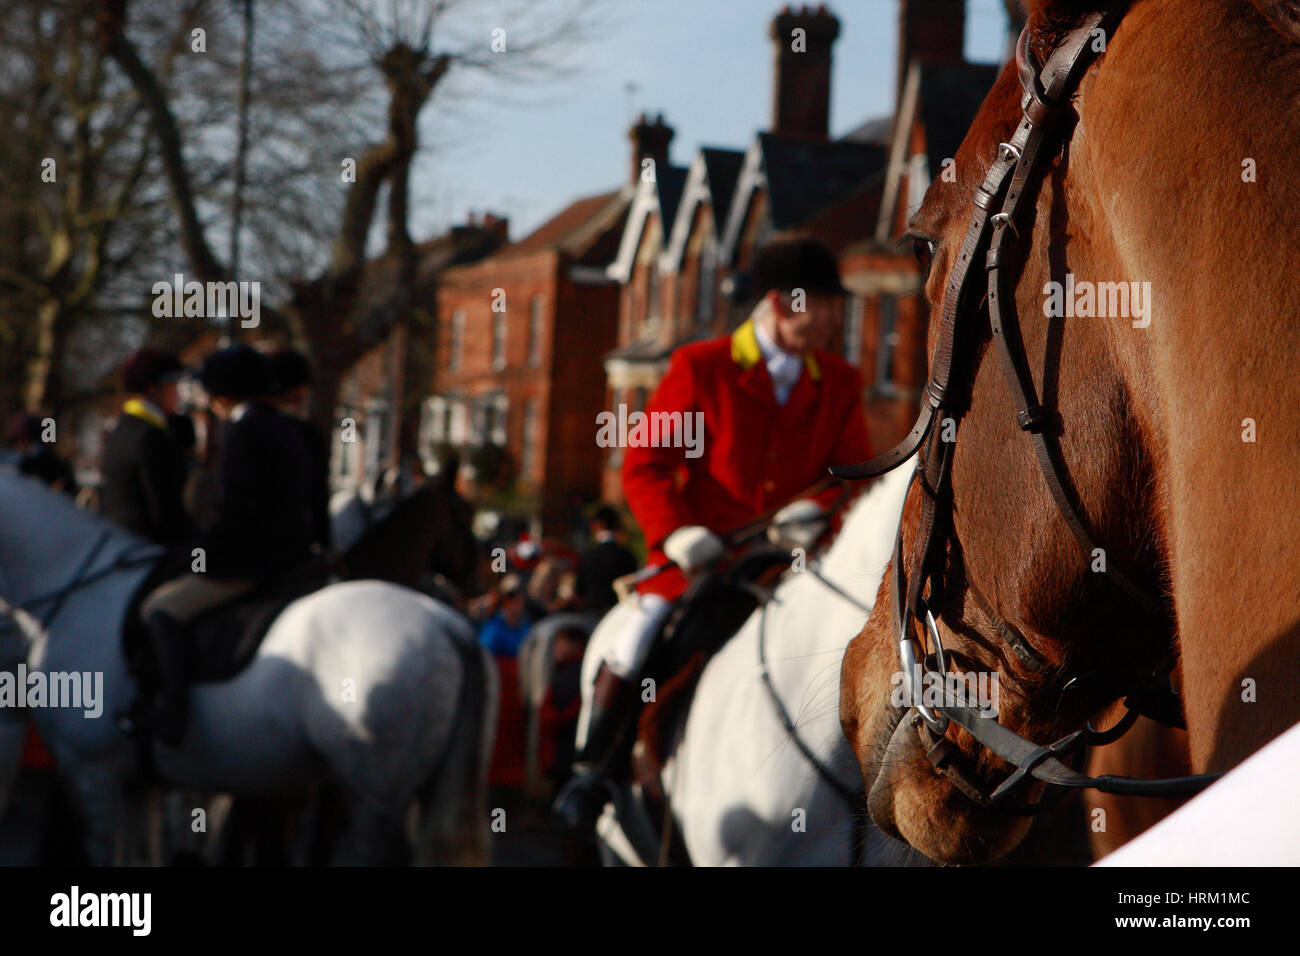 A group of horses and riders gathered in Tenterden, Kent, England, and waiting  for the annual Boxing Day hunt to Stock Photo